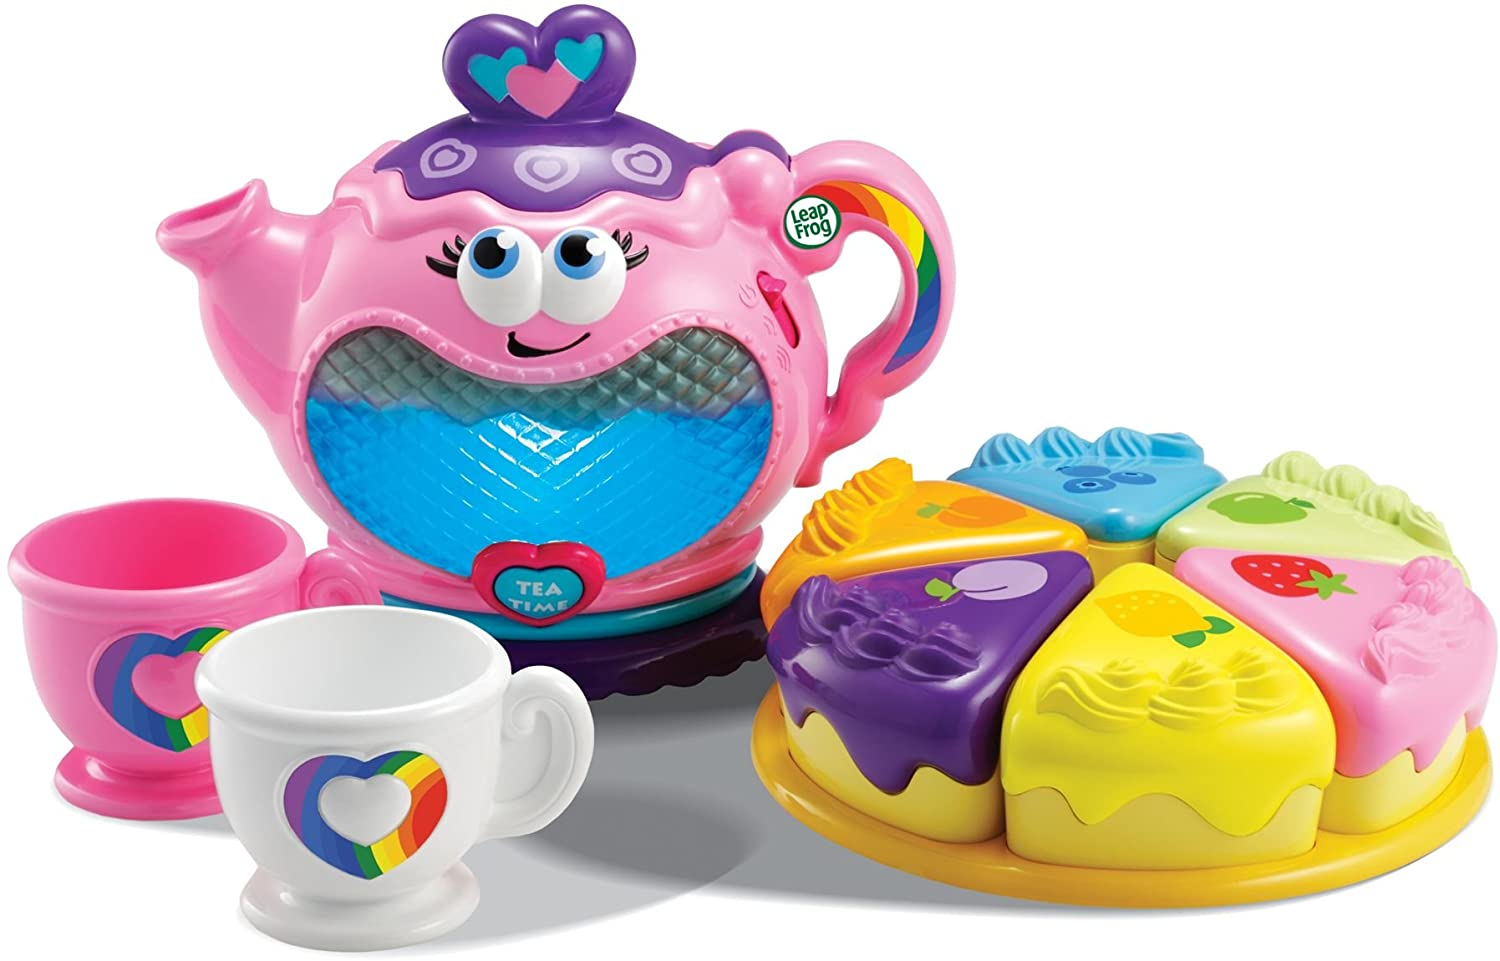 Top 10 Best Tea Sets for Kids Reviews in 2020 3